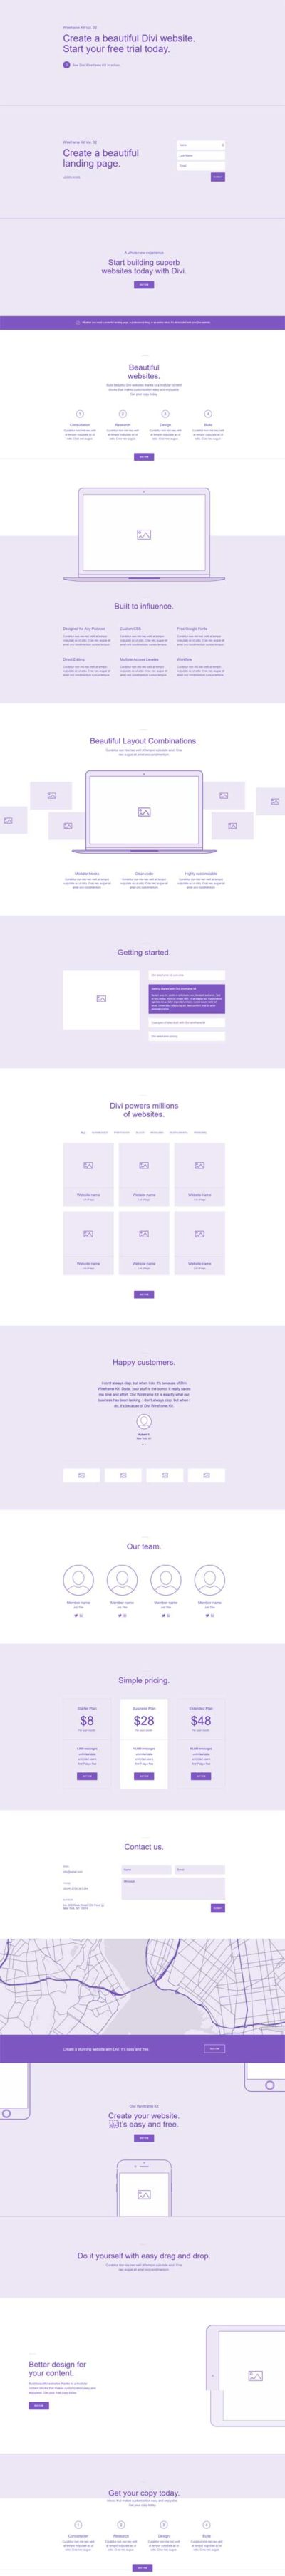 divi wireframe layout vol 2